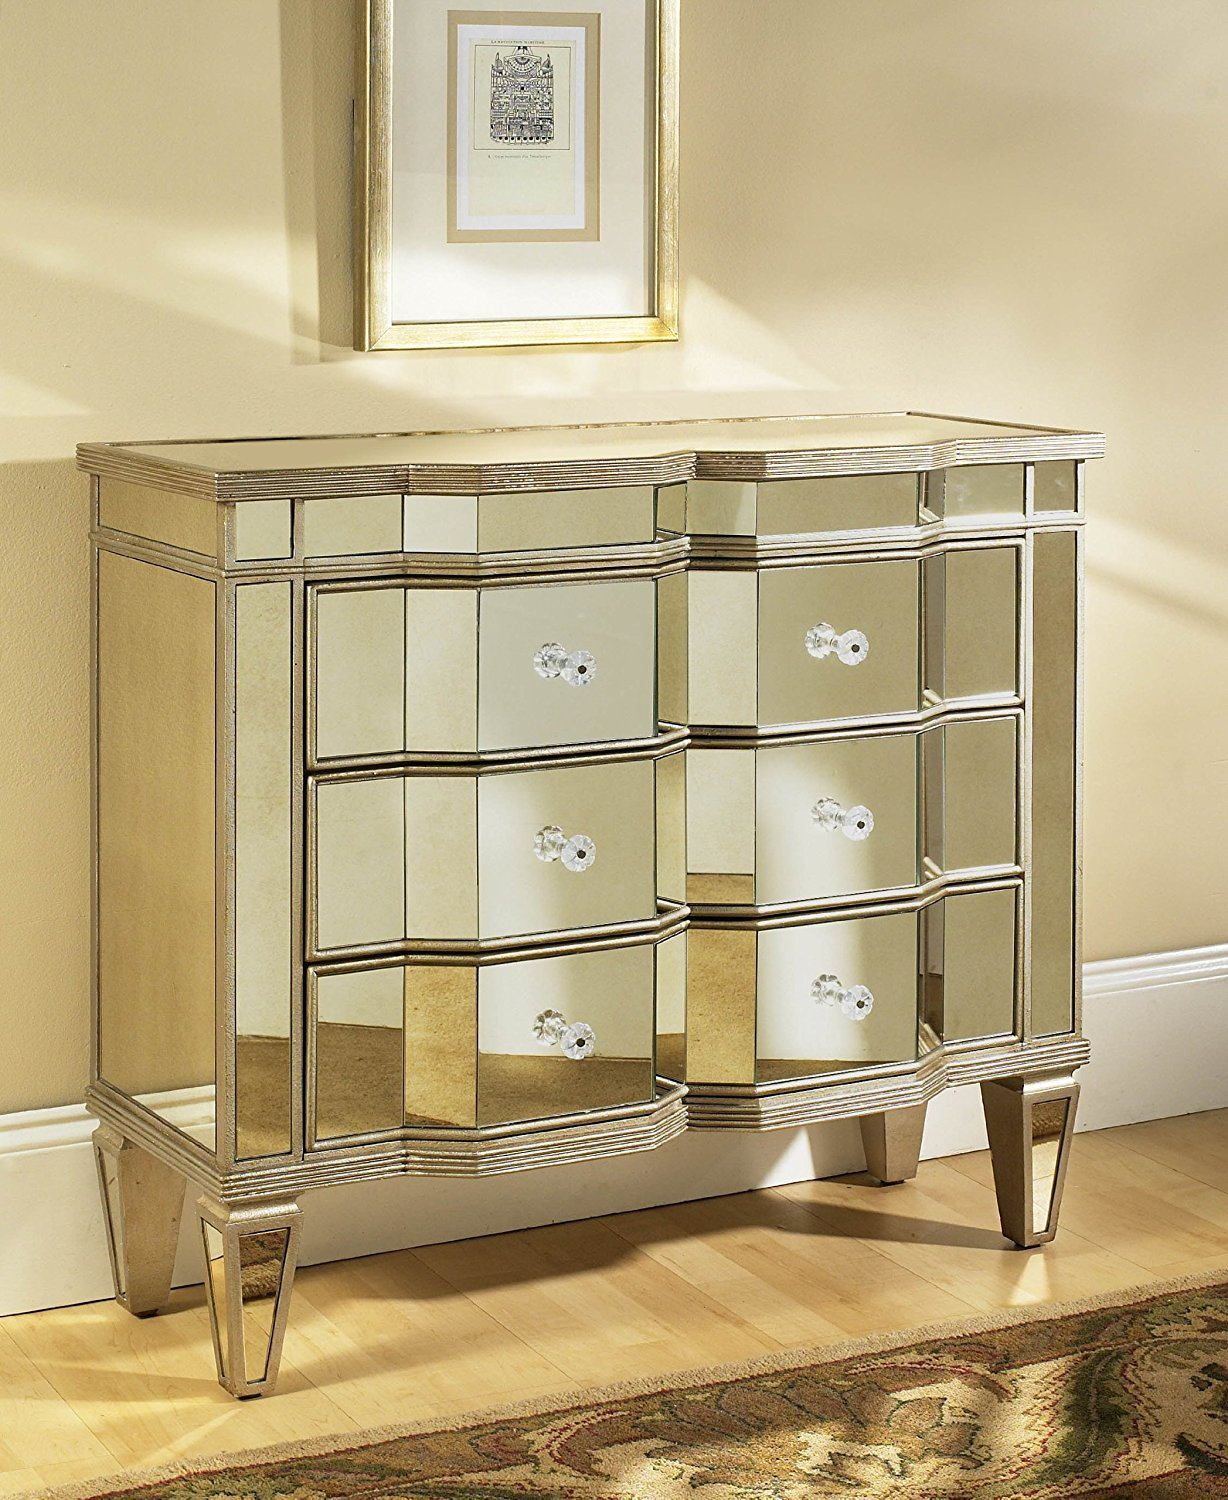 inspirations interior small storage design ideas with accent chest drawers chests doors three drawer narrow cabinet console mirrored cabinets living room foyer table barn door